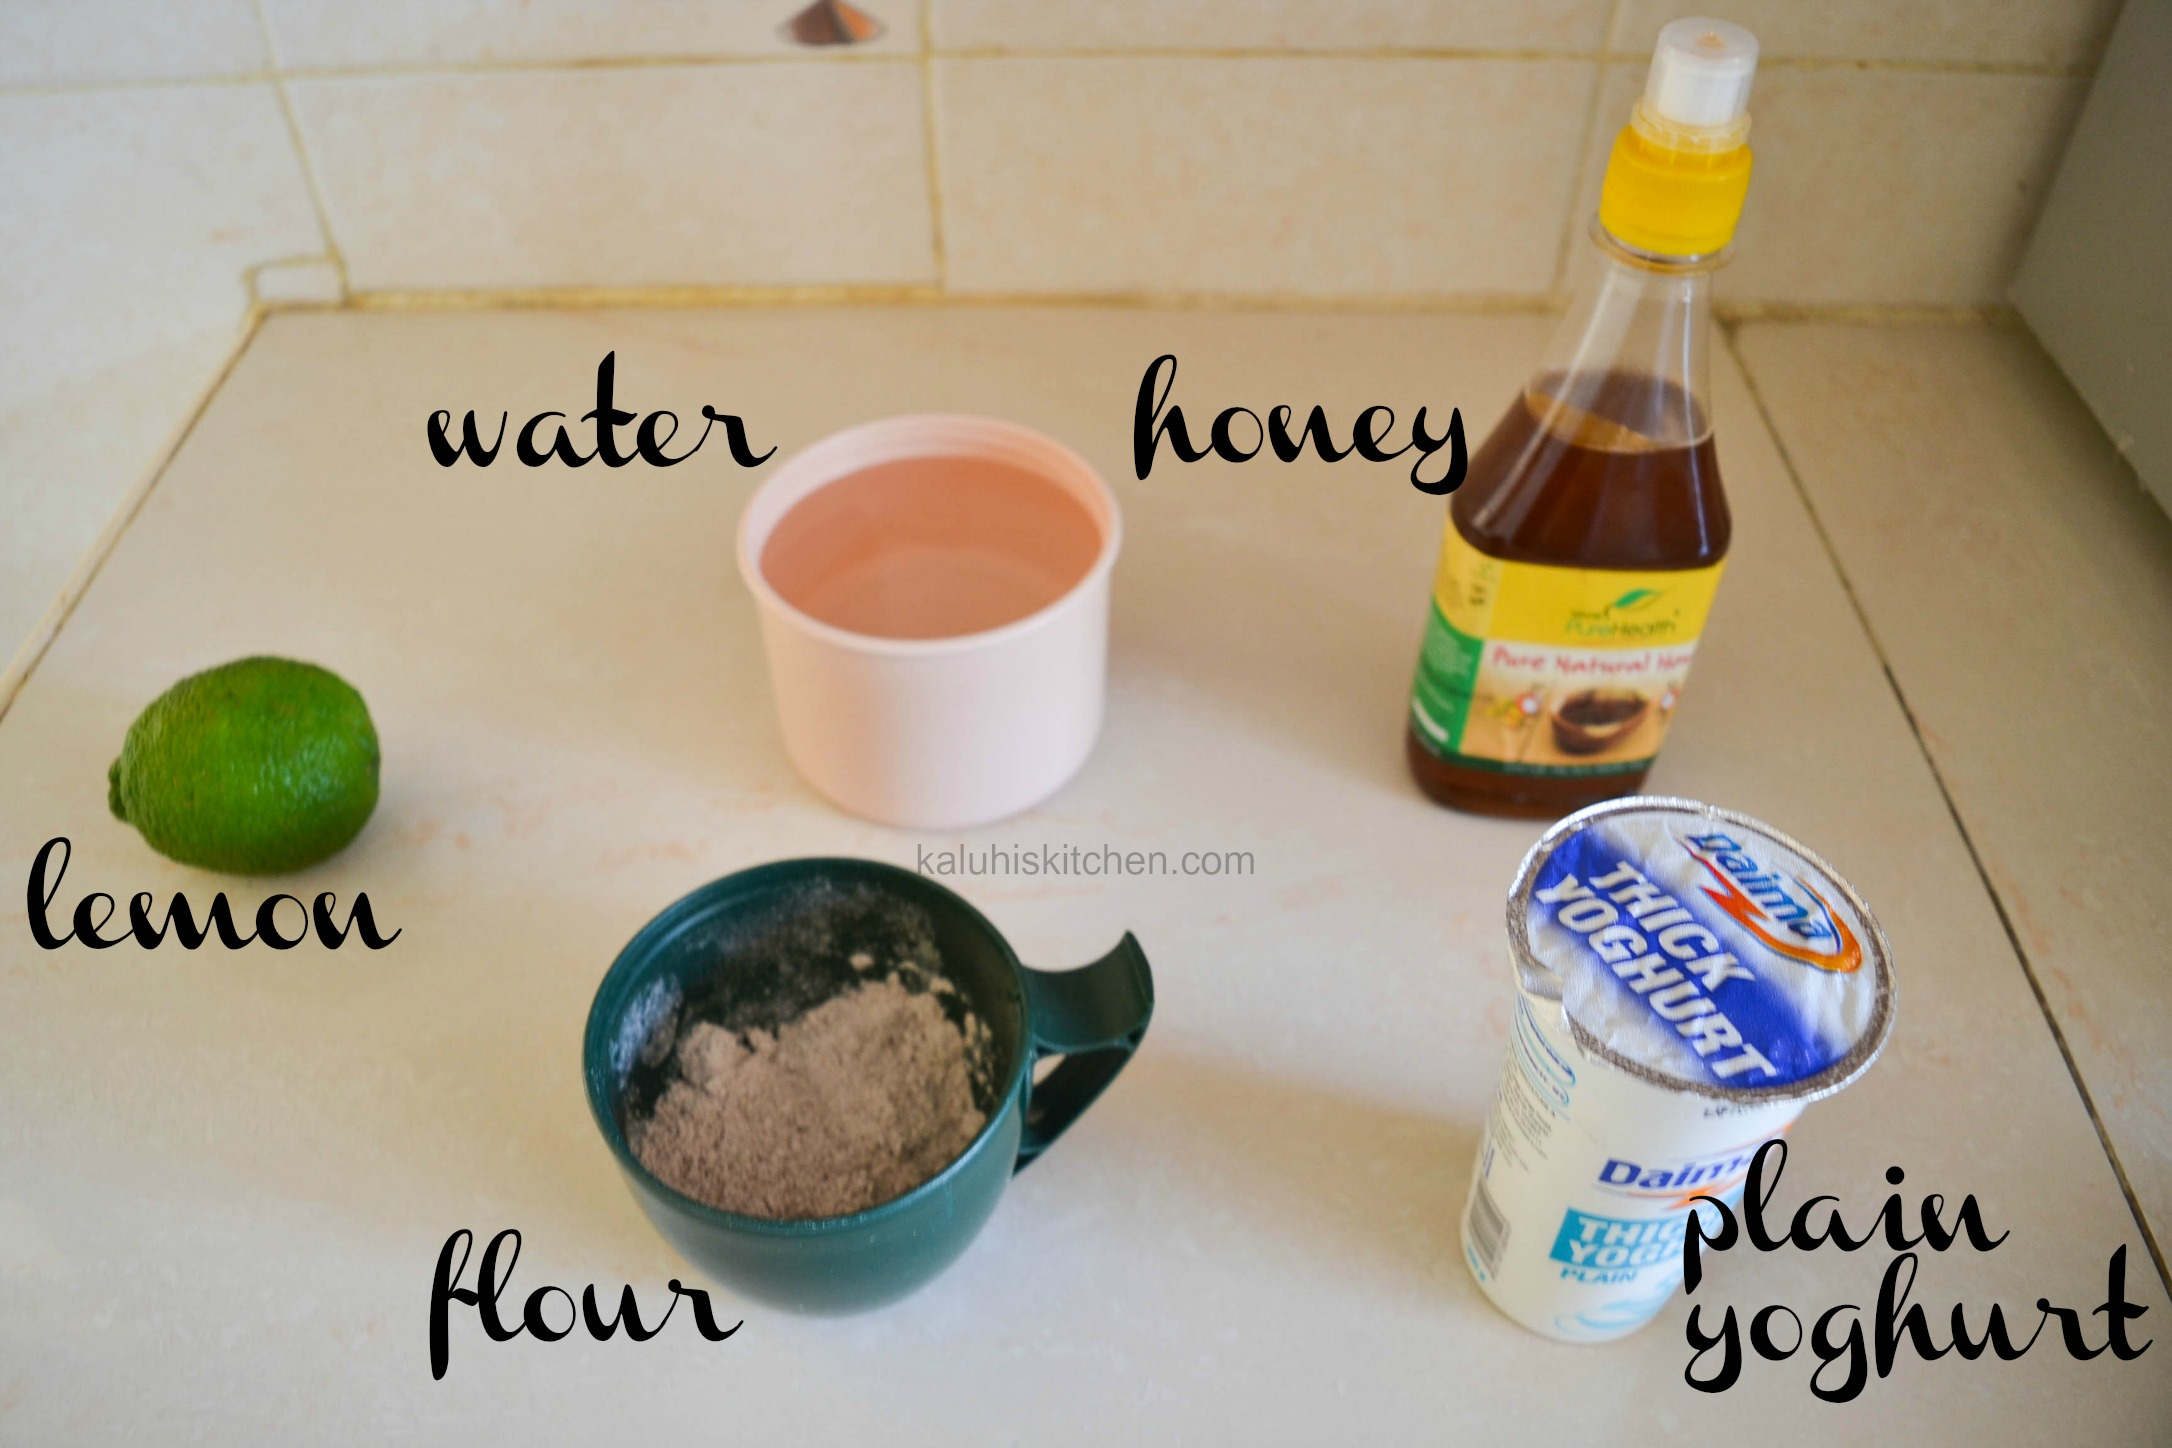 ingredeints of how to make uji_how to make kenyan porridge_kaluhiskitcehn.com